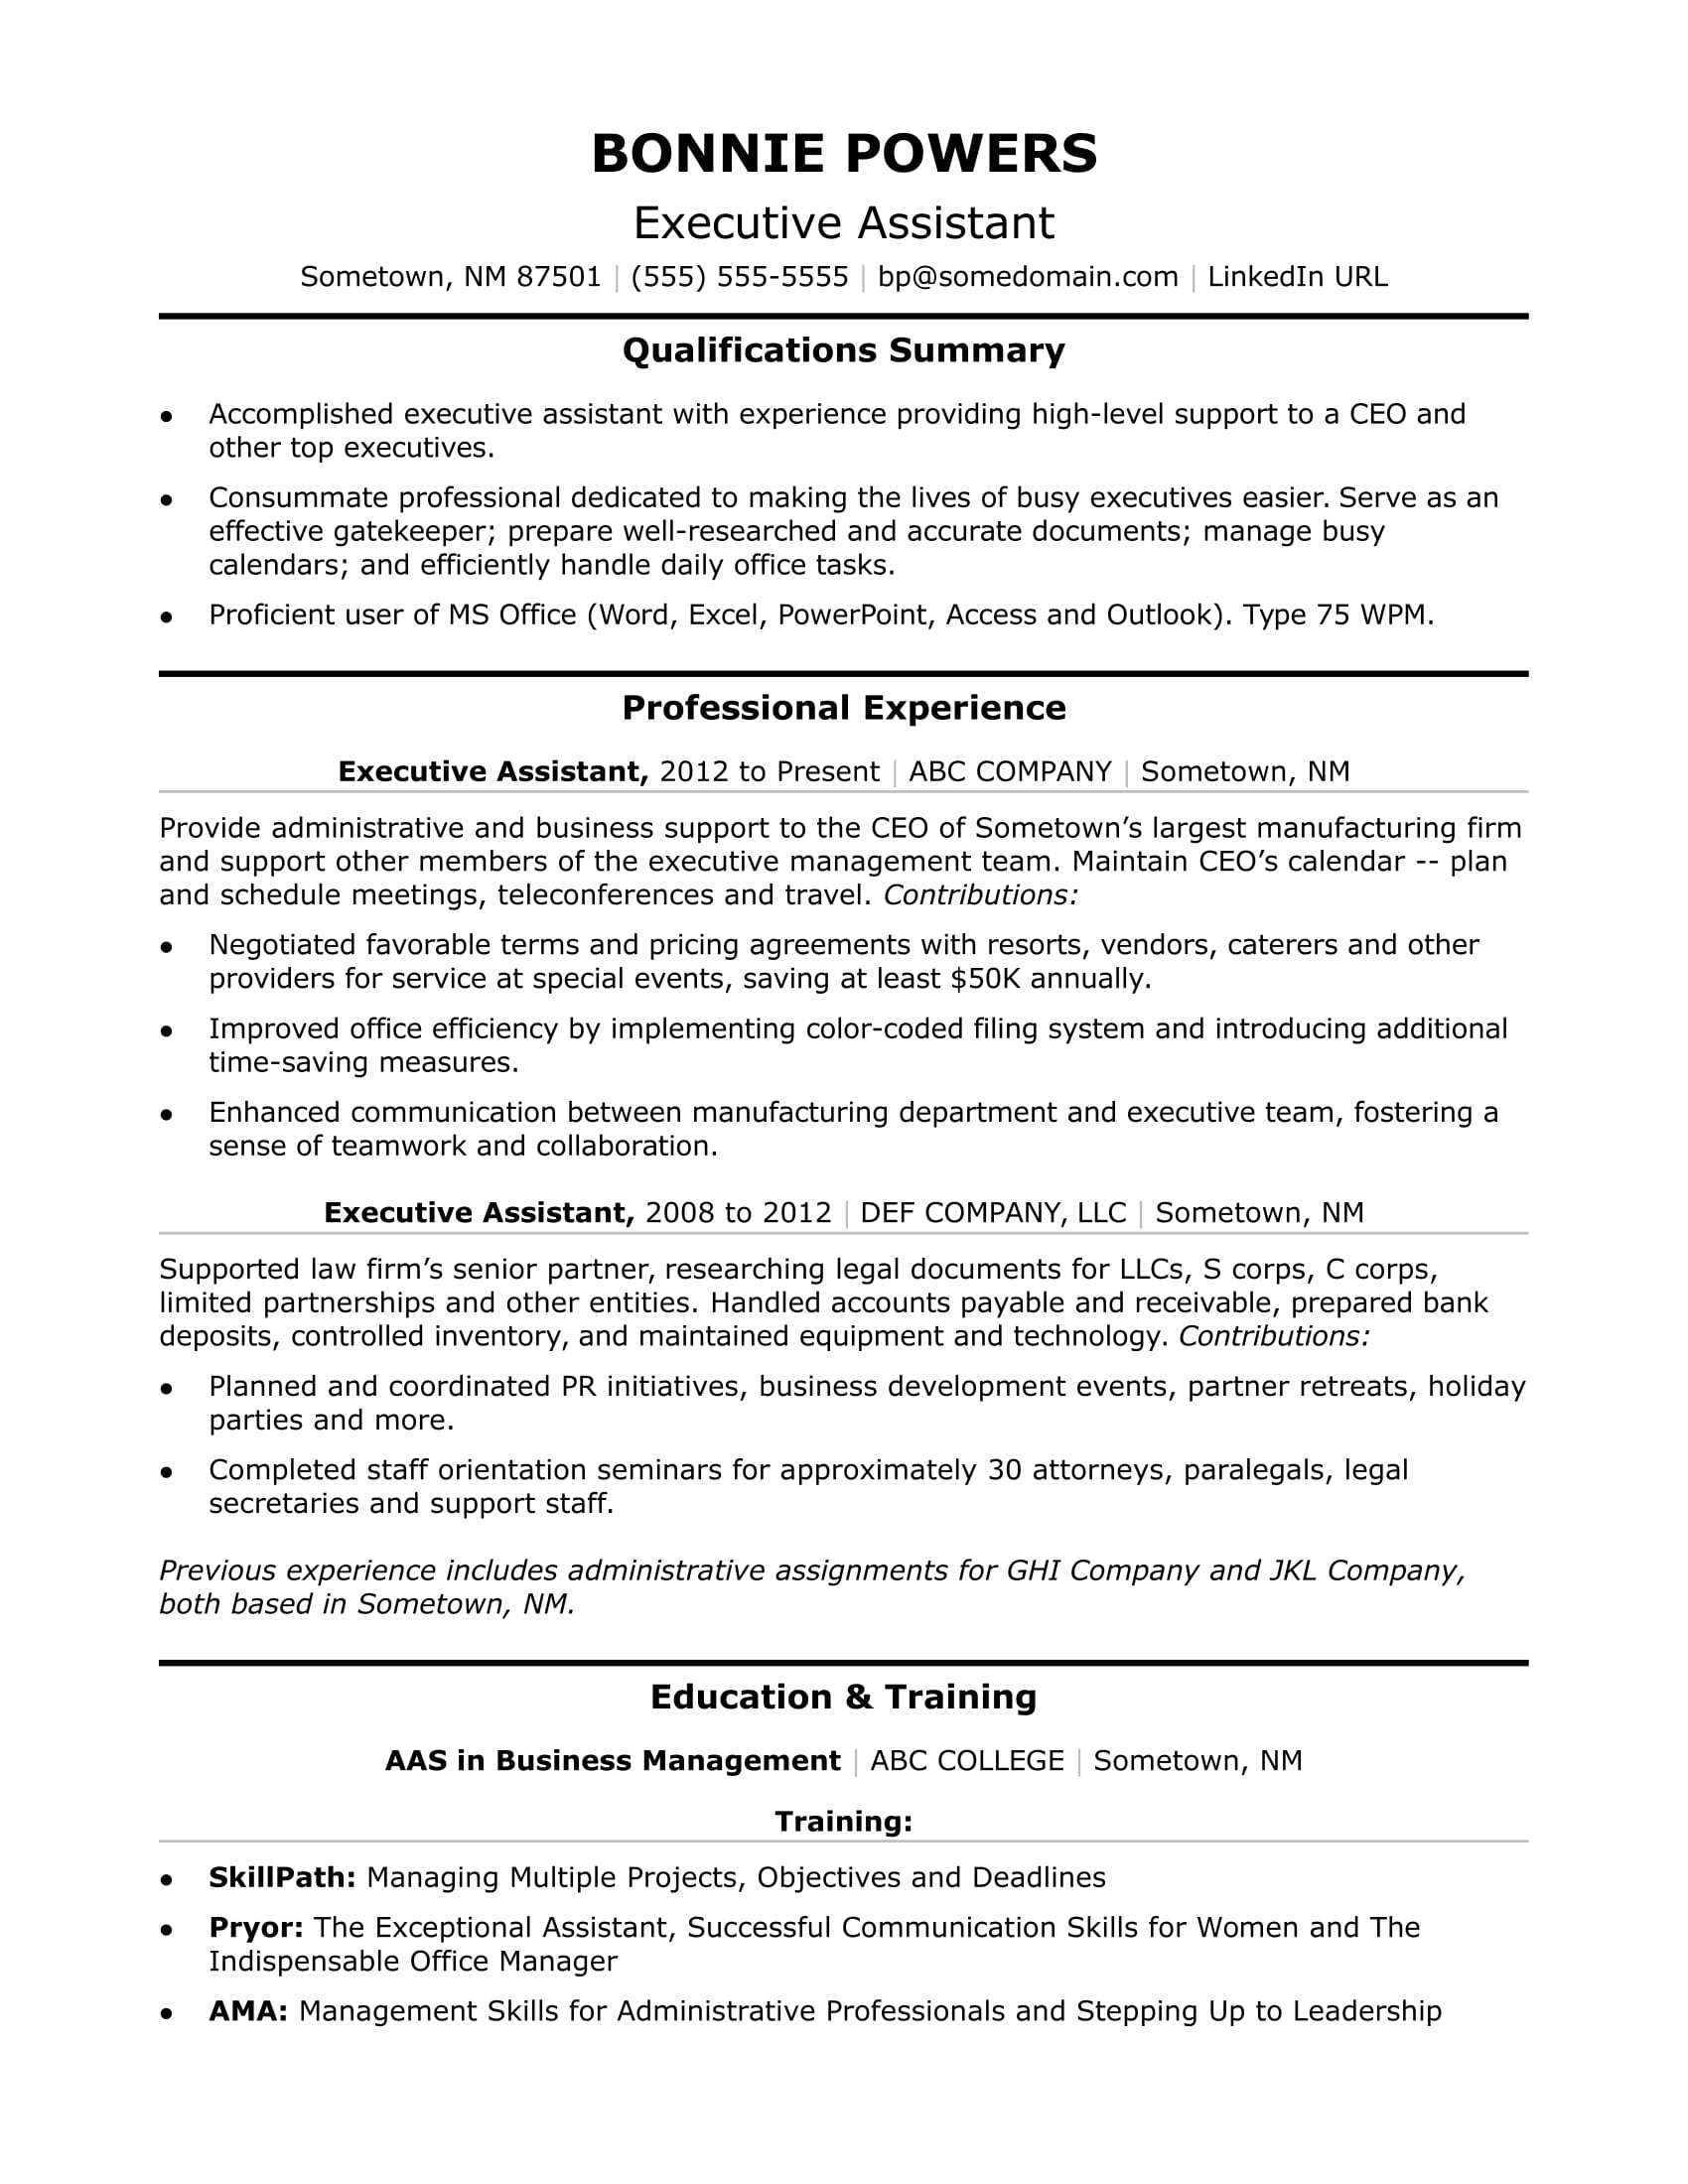 executive administrative assistant resume sample monster example of graphic designer job Resume Example Resume Of Administrative Assistant